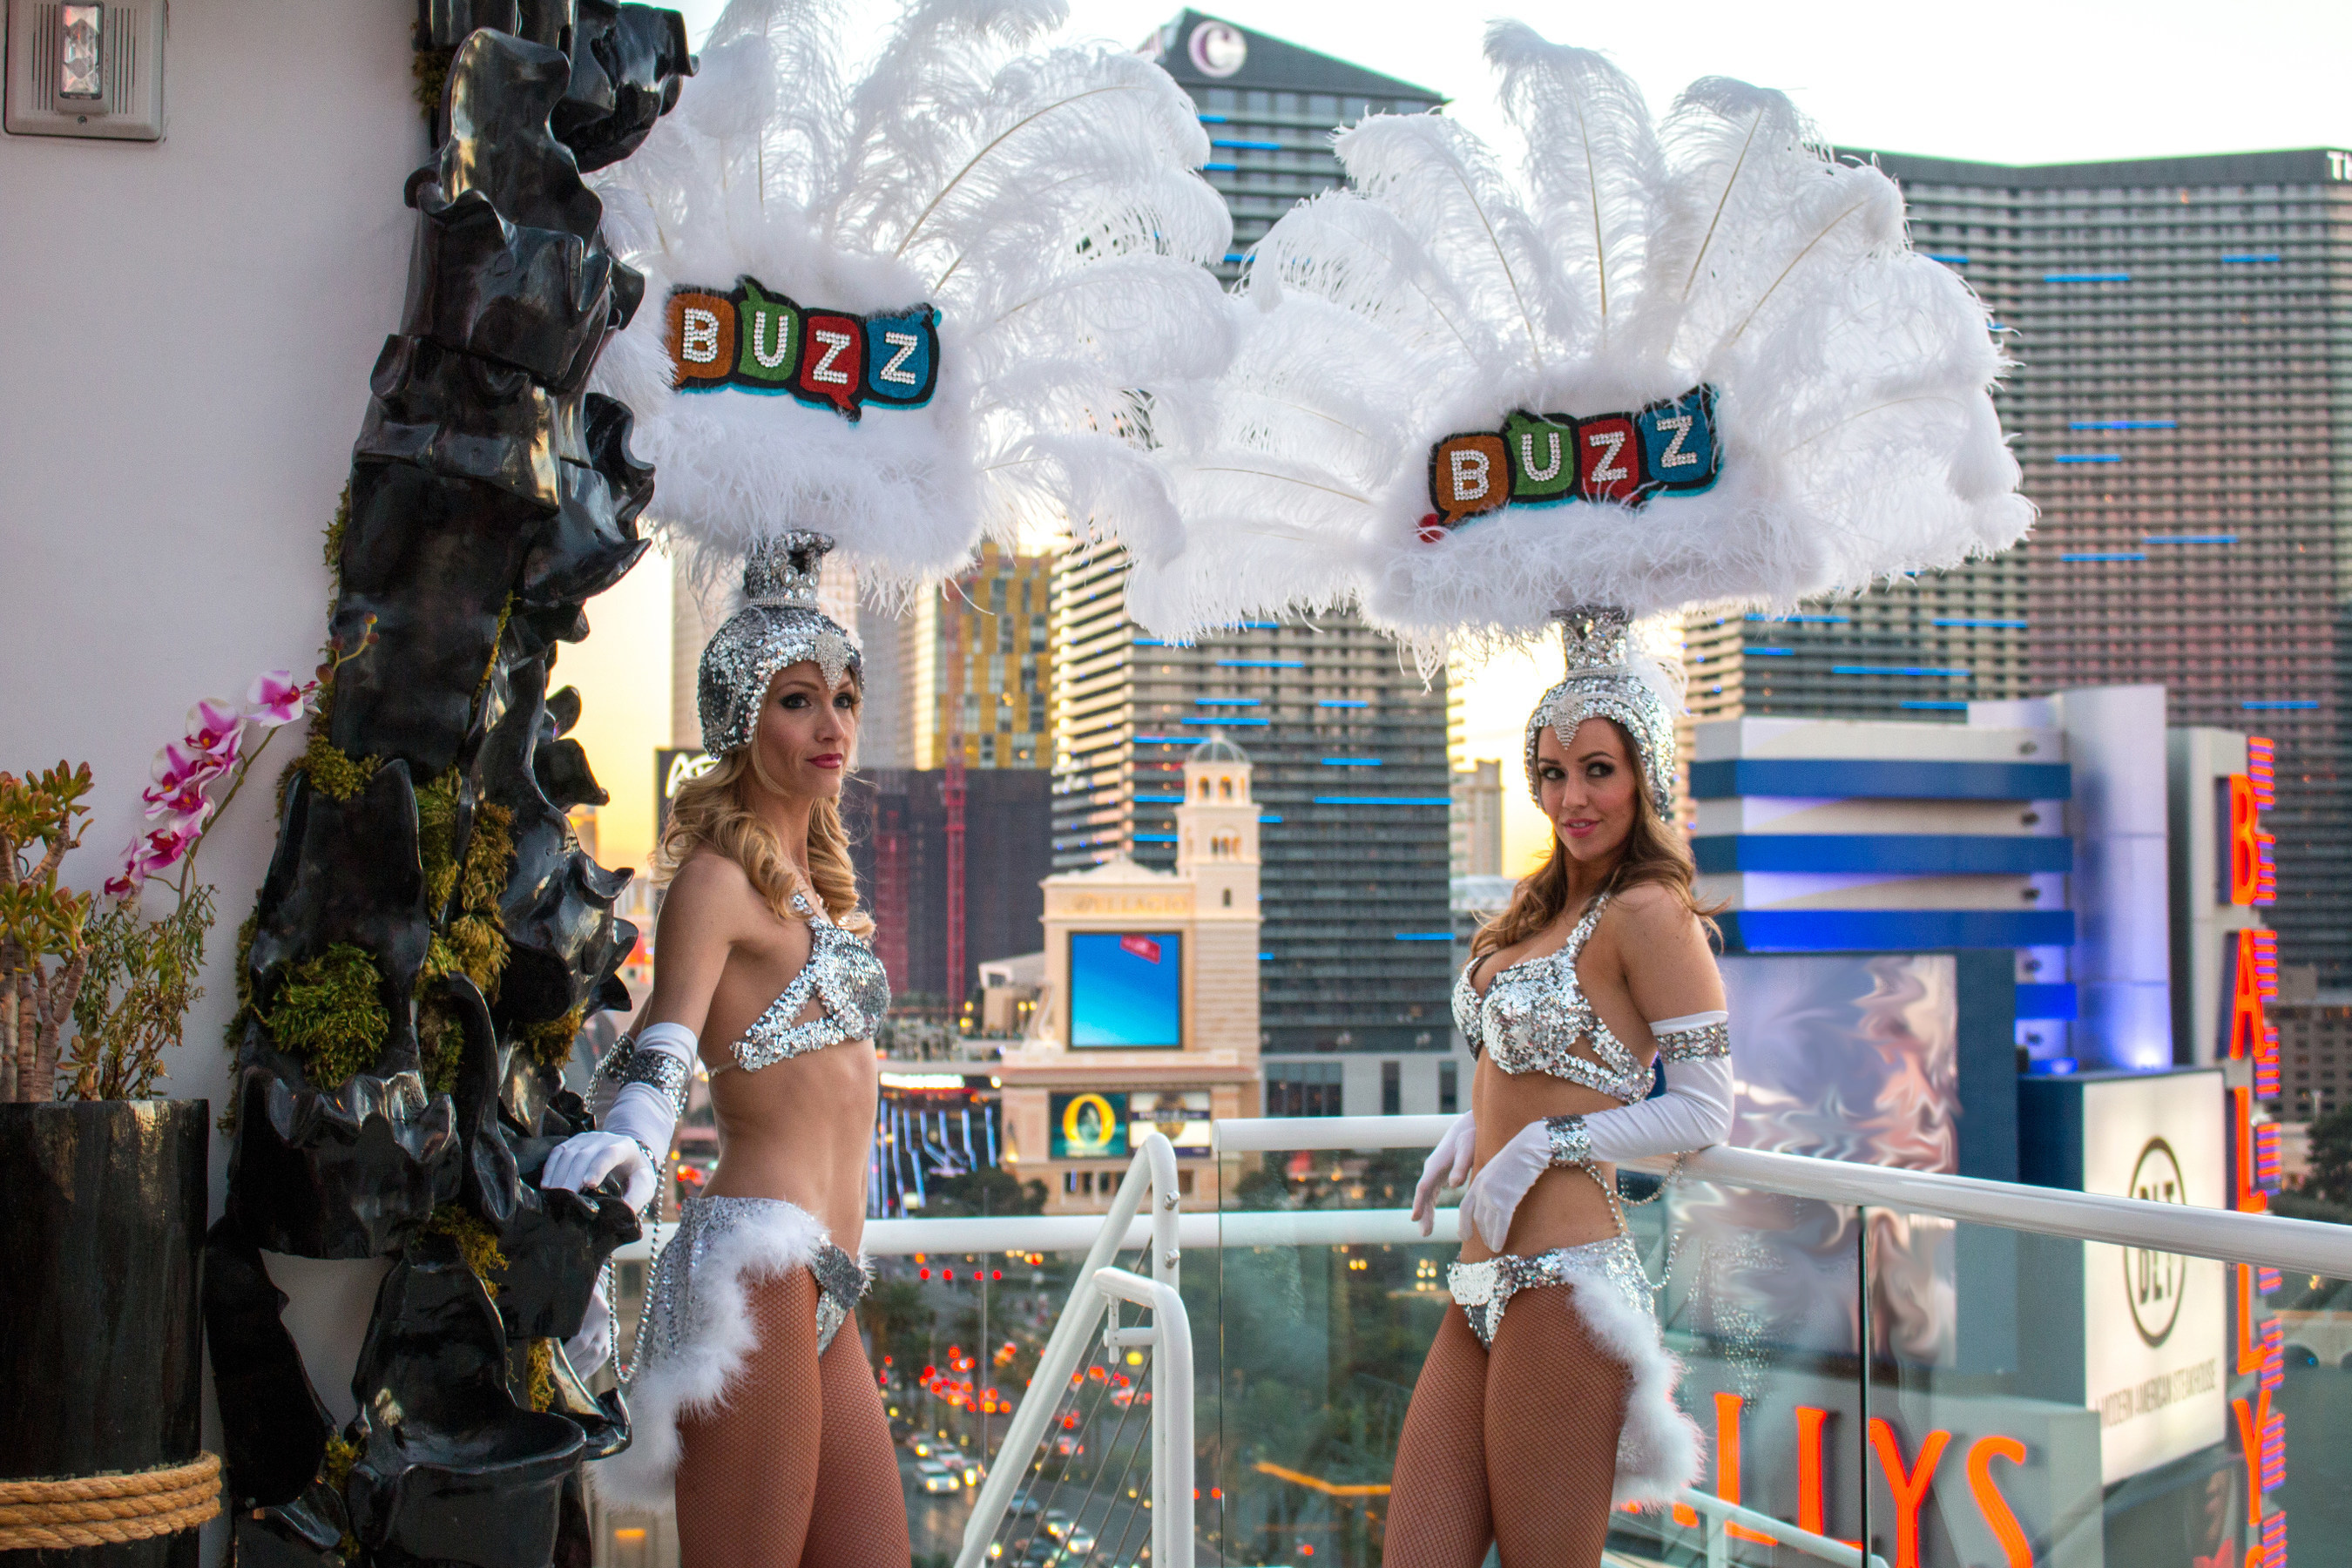 .BUZZ Showgirls, Smithy and Mariah, are among a legion of actual Vegas showgirls who will take their high-tech, GoPro(TM)-enabled showgirl costumes on a journey around the globe to review shows in the world's top travel destinations, including Vegas, New York, Paris and London.